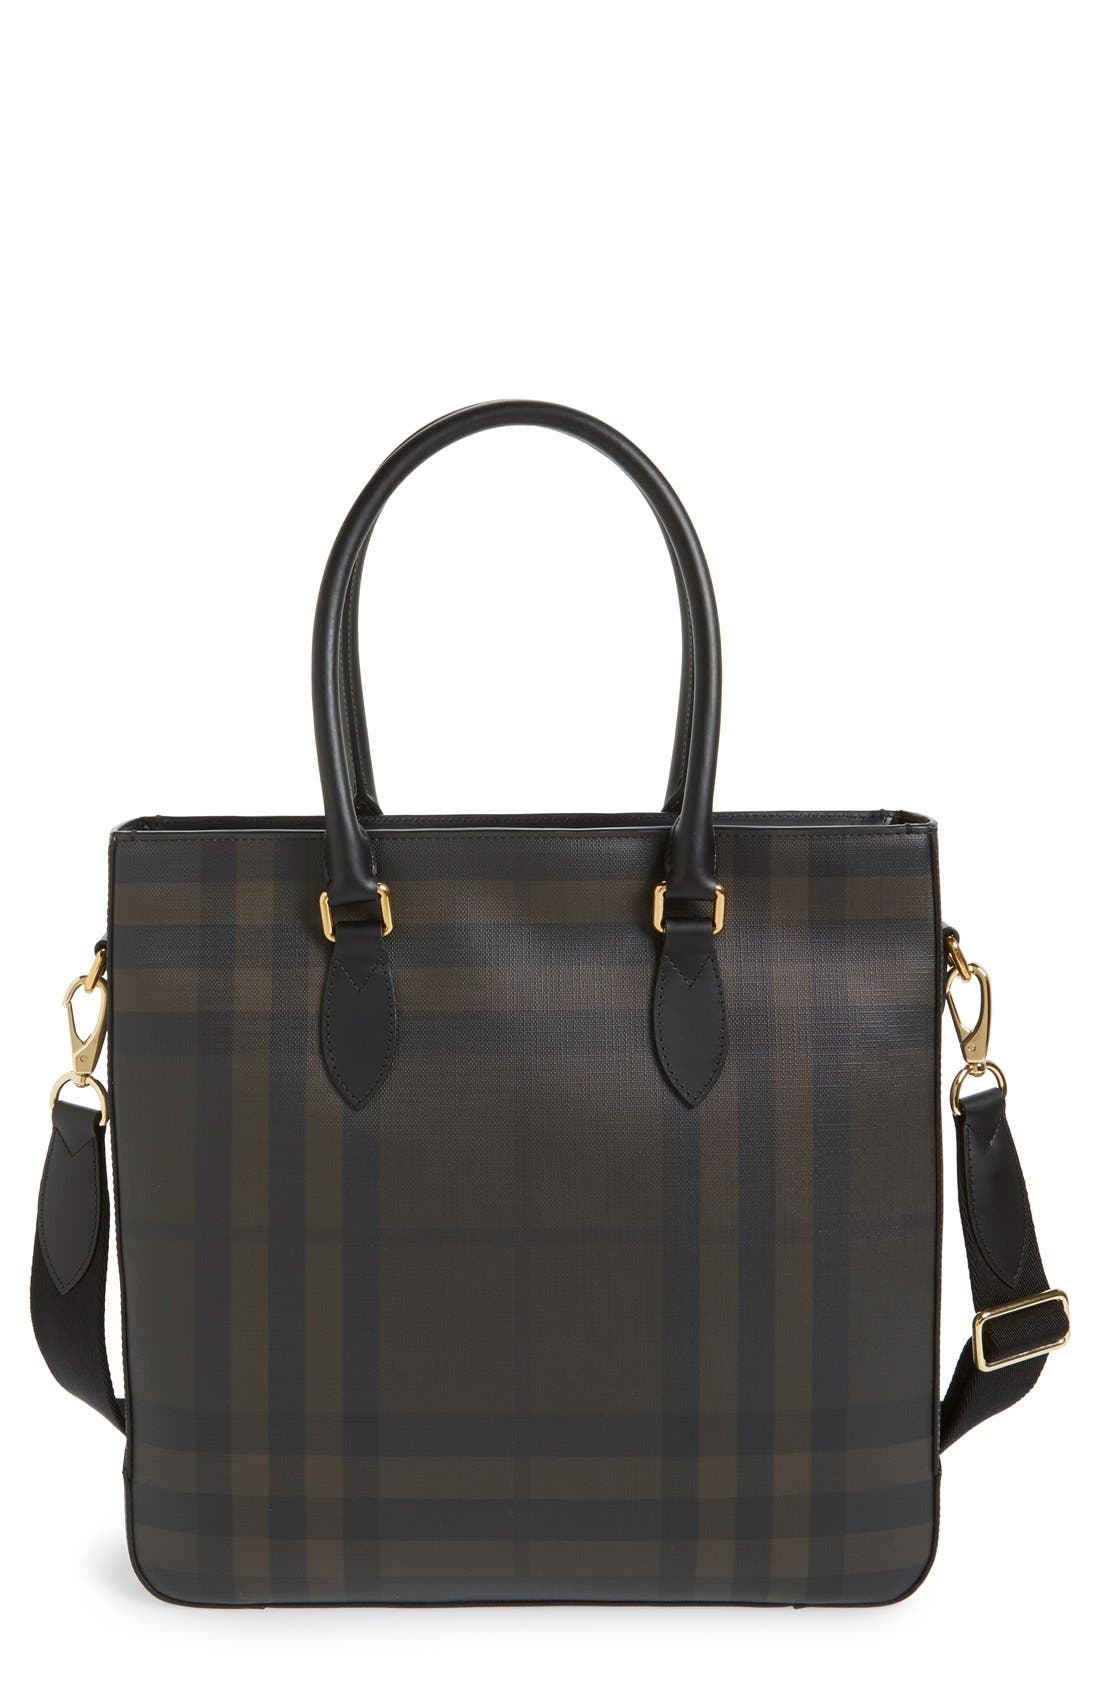 Burberry 'Kenneth' Check Print Tote